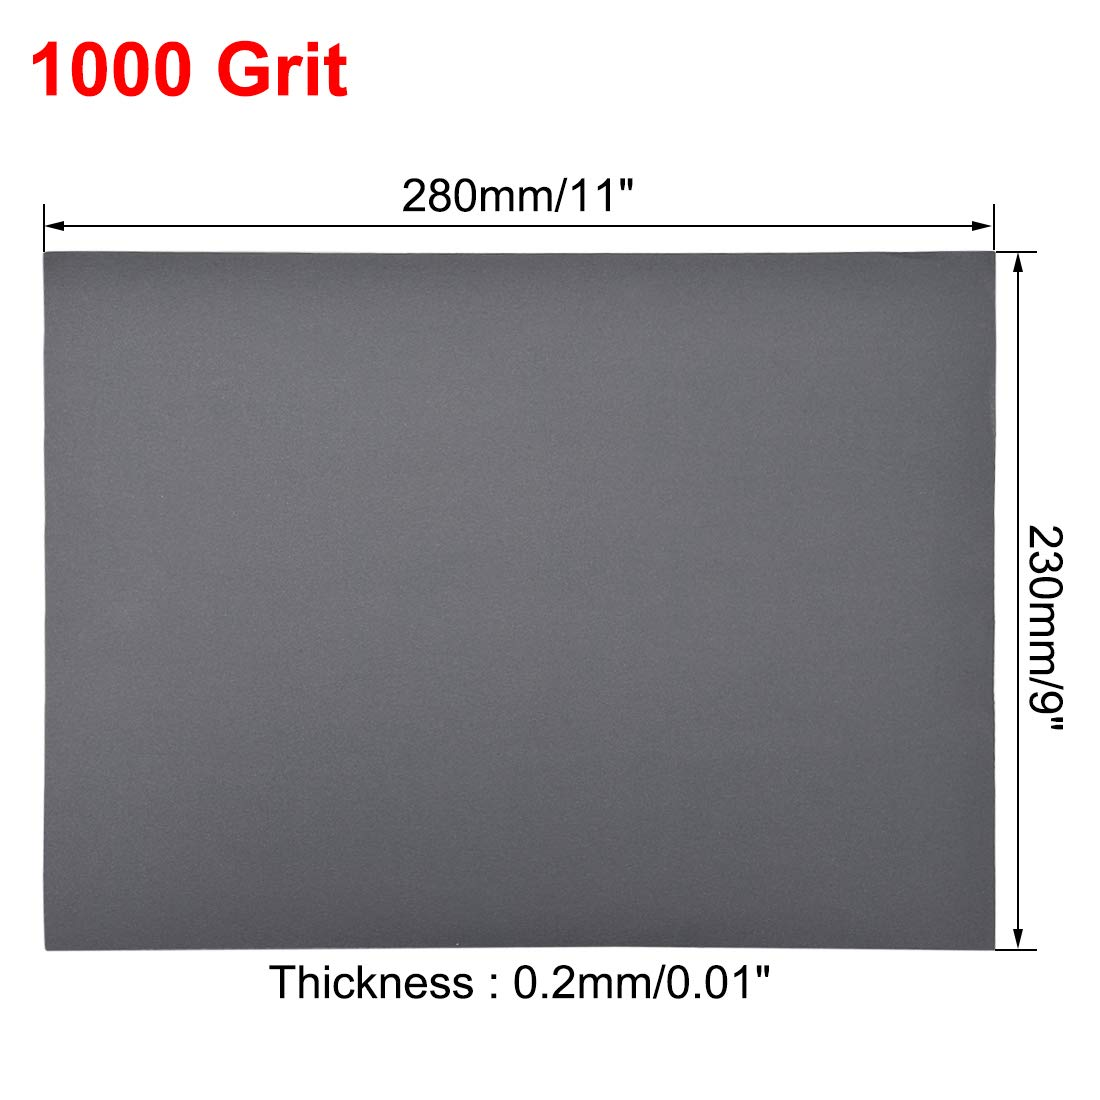 1500 grain sanding sheets 9 inches x 11 inches Dry and wet silicon carbide sandpaper for wood furniture Metal Automotive polishing 3 pieces